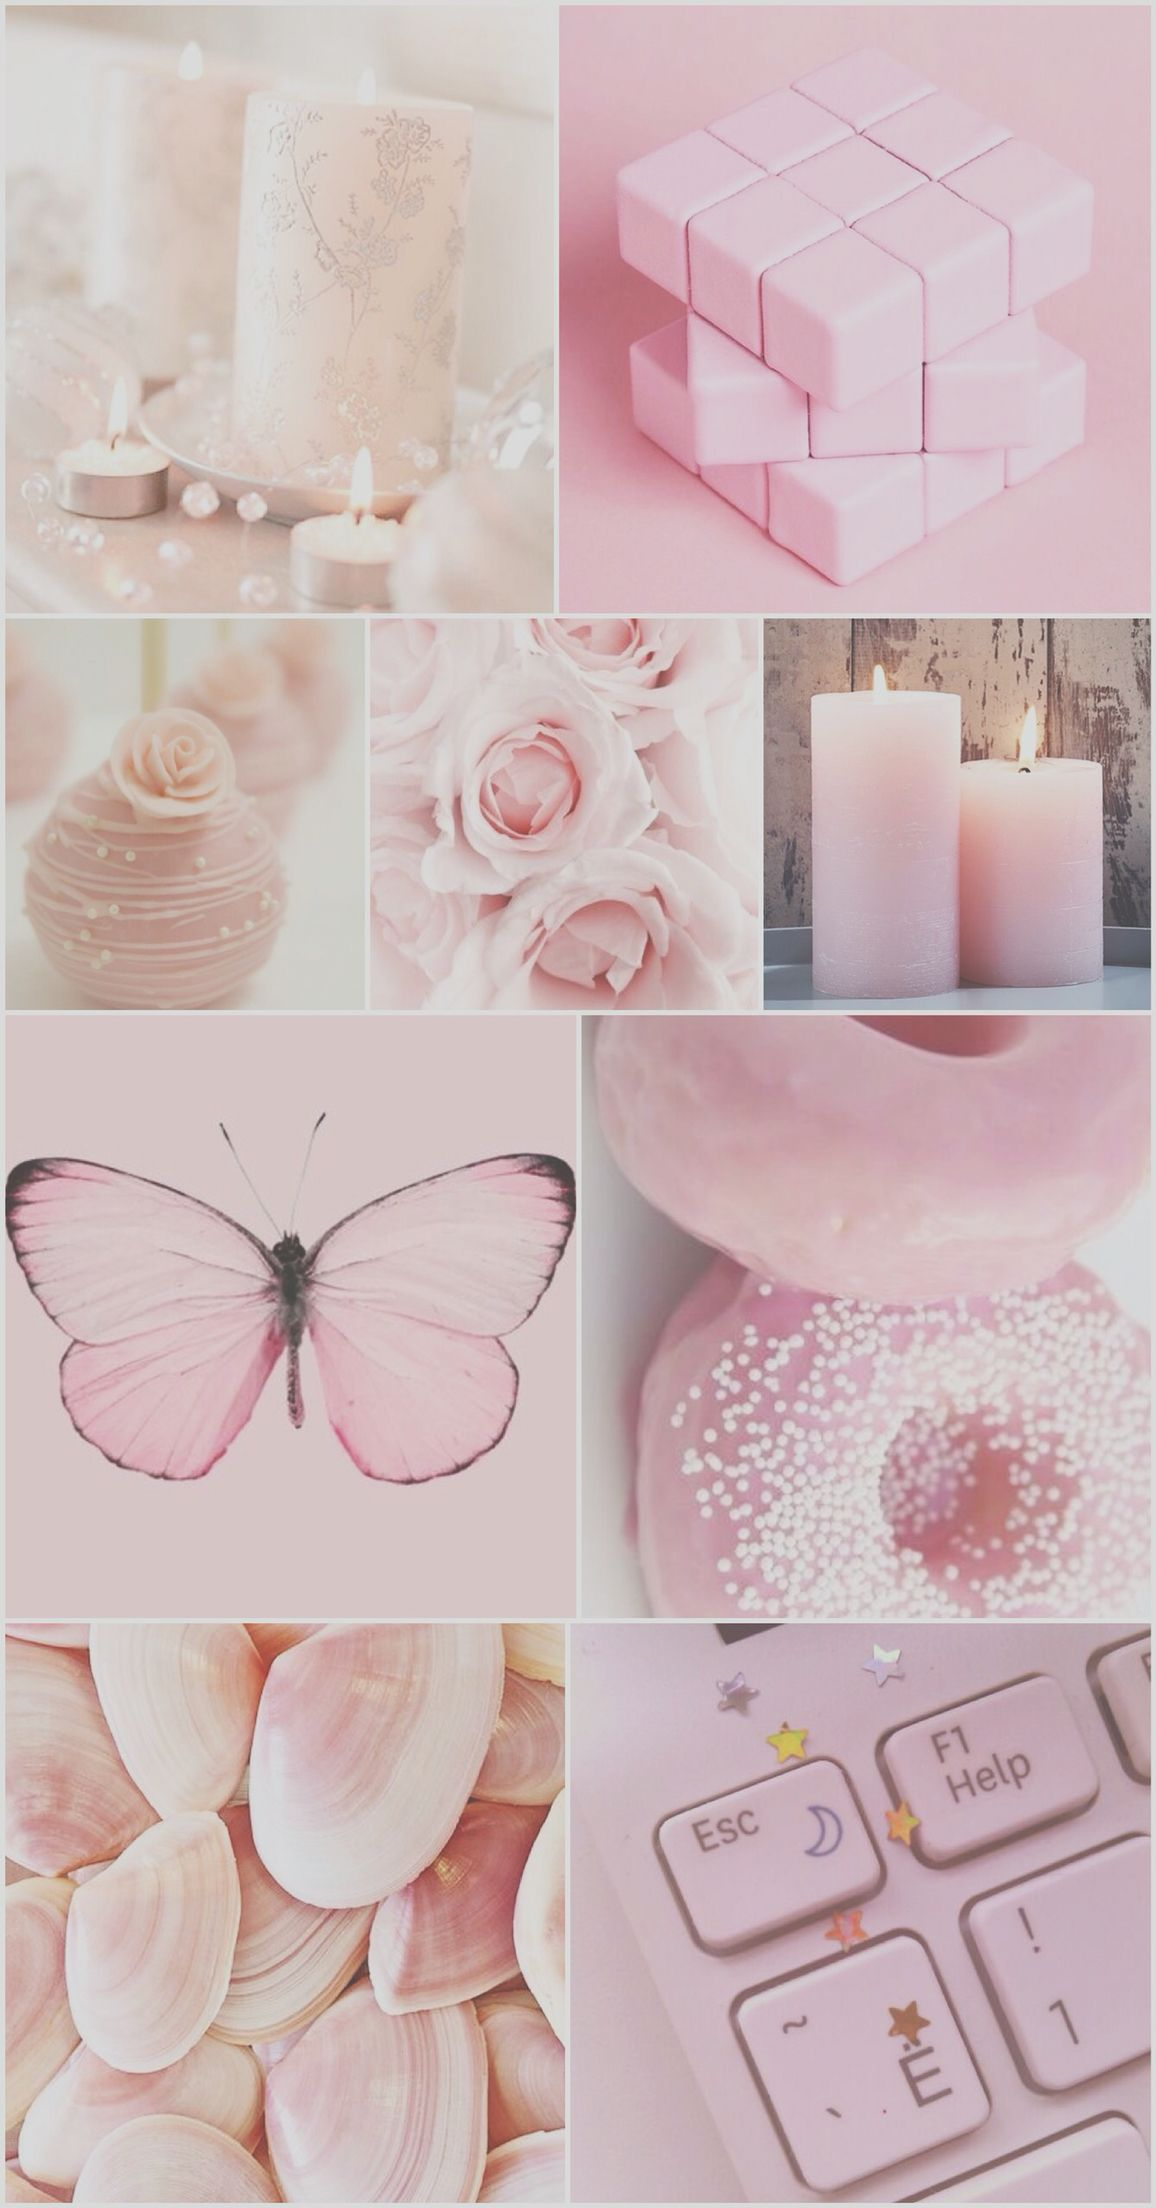 Requested, pale, pink, wallpaper, light, cute, donut